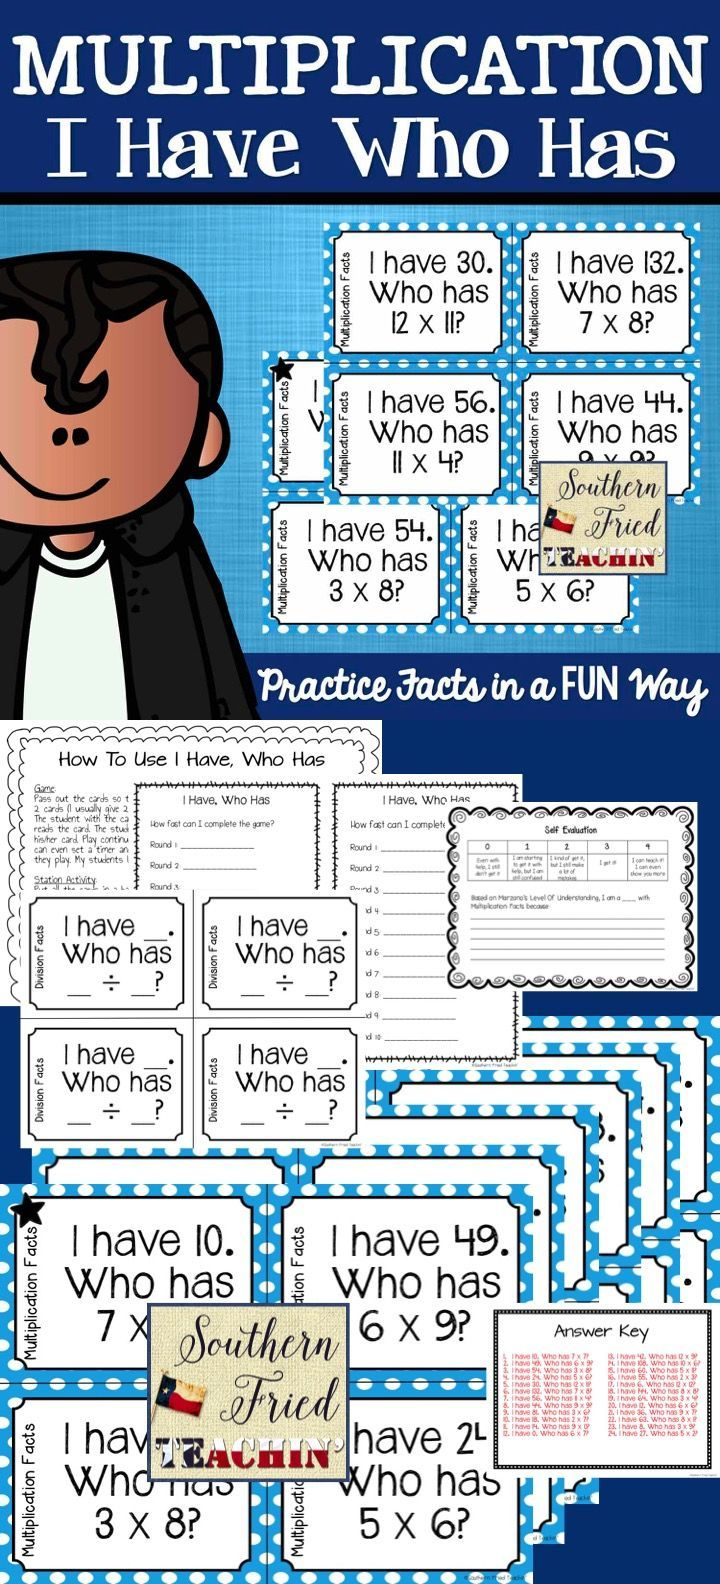 Worksheet I Have Who Has Multiplication Facts worksheet i have who has multiplication facts mikyu free 1000 ideas about practice on pinterest i